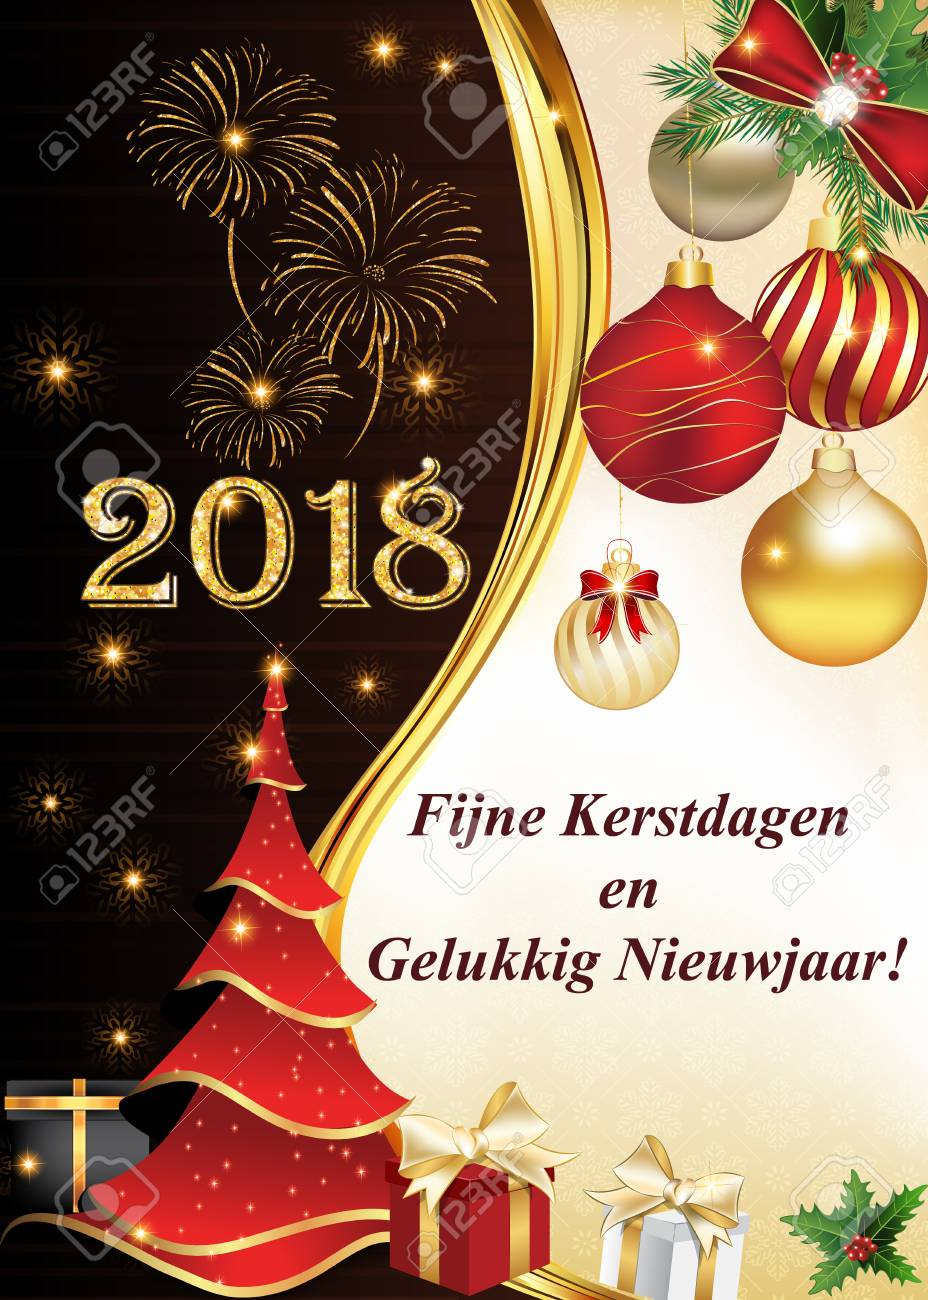 merry christmas and a happy new year 2018 written in dutch blue corporate greeting